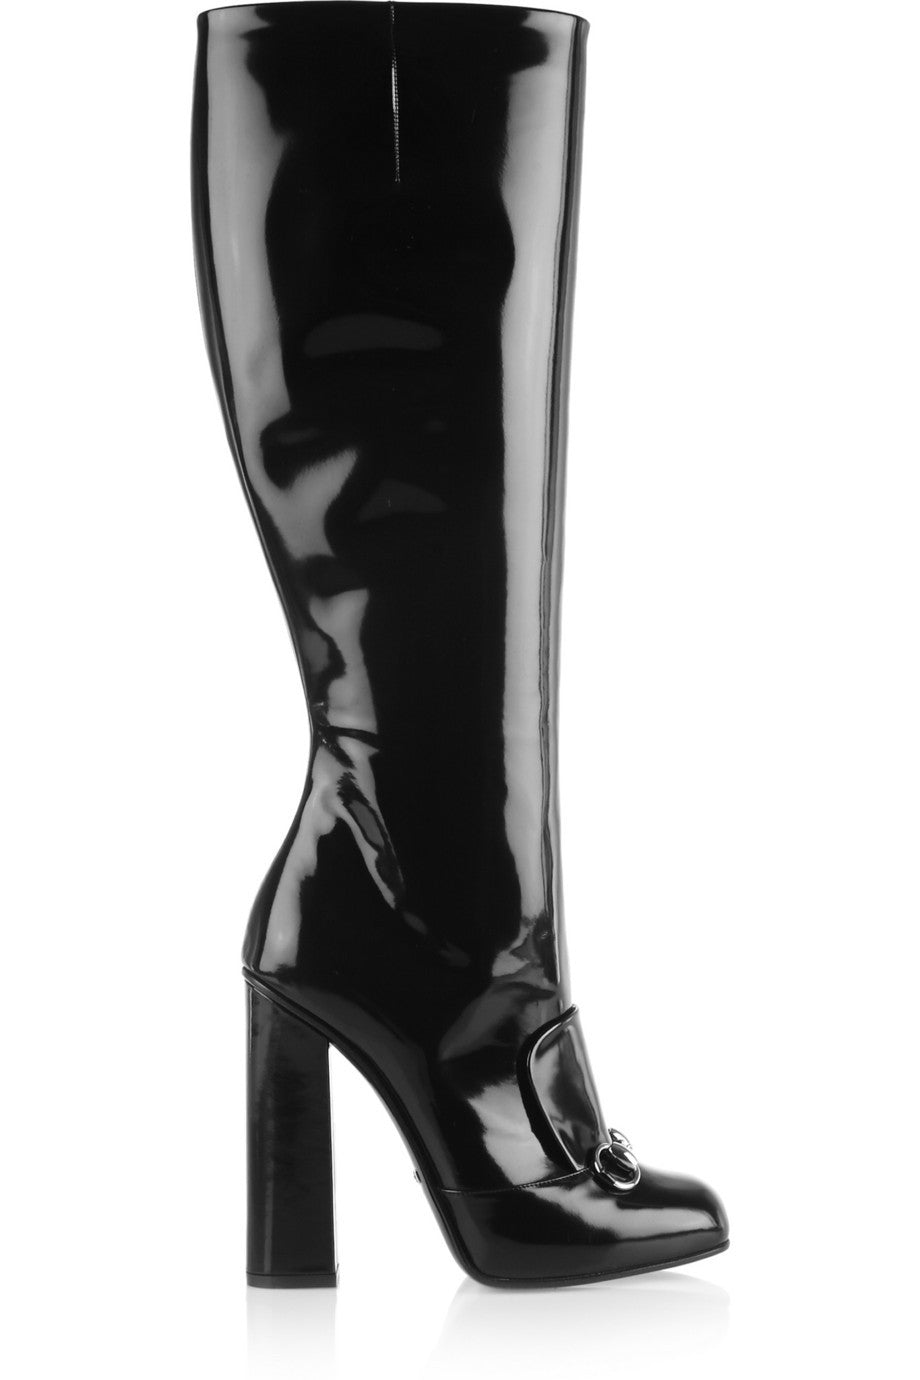 be29c9061a4 NEW! GUCCI Black Patent Leather Silver Horsebit Detail Knee Tall Boots